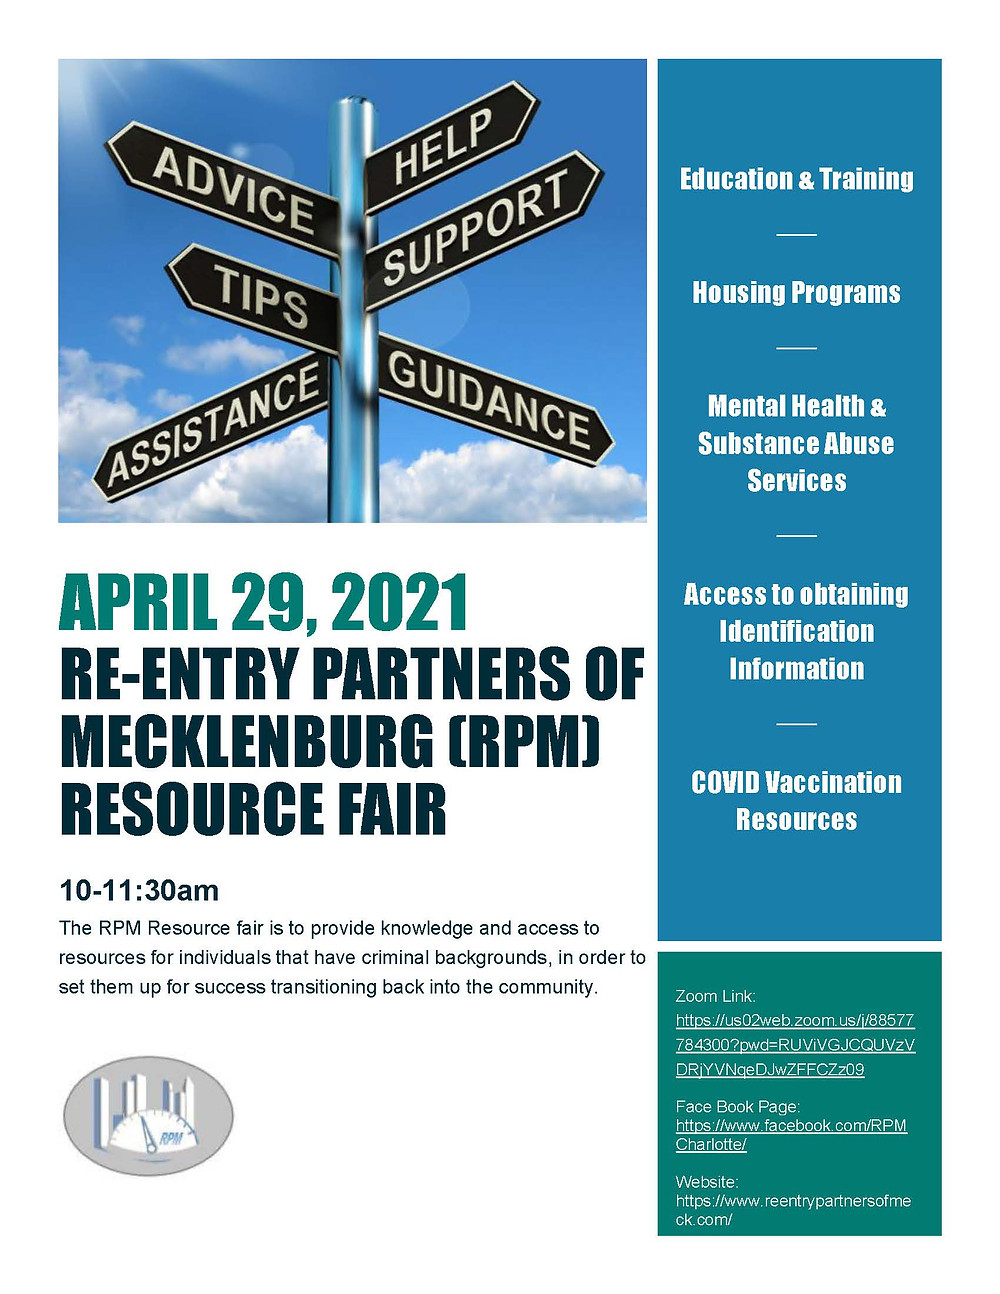 Re-Entry Partners of Mecklenburg Resource Fair 2021